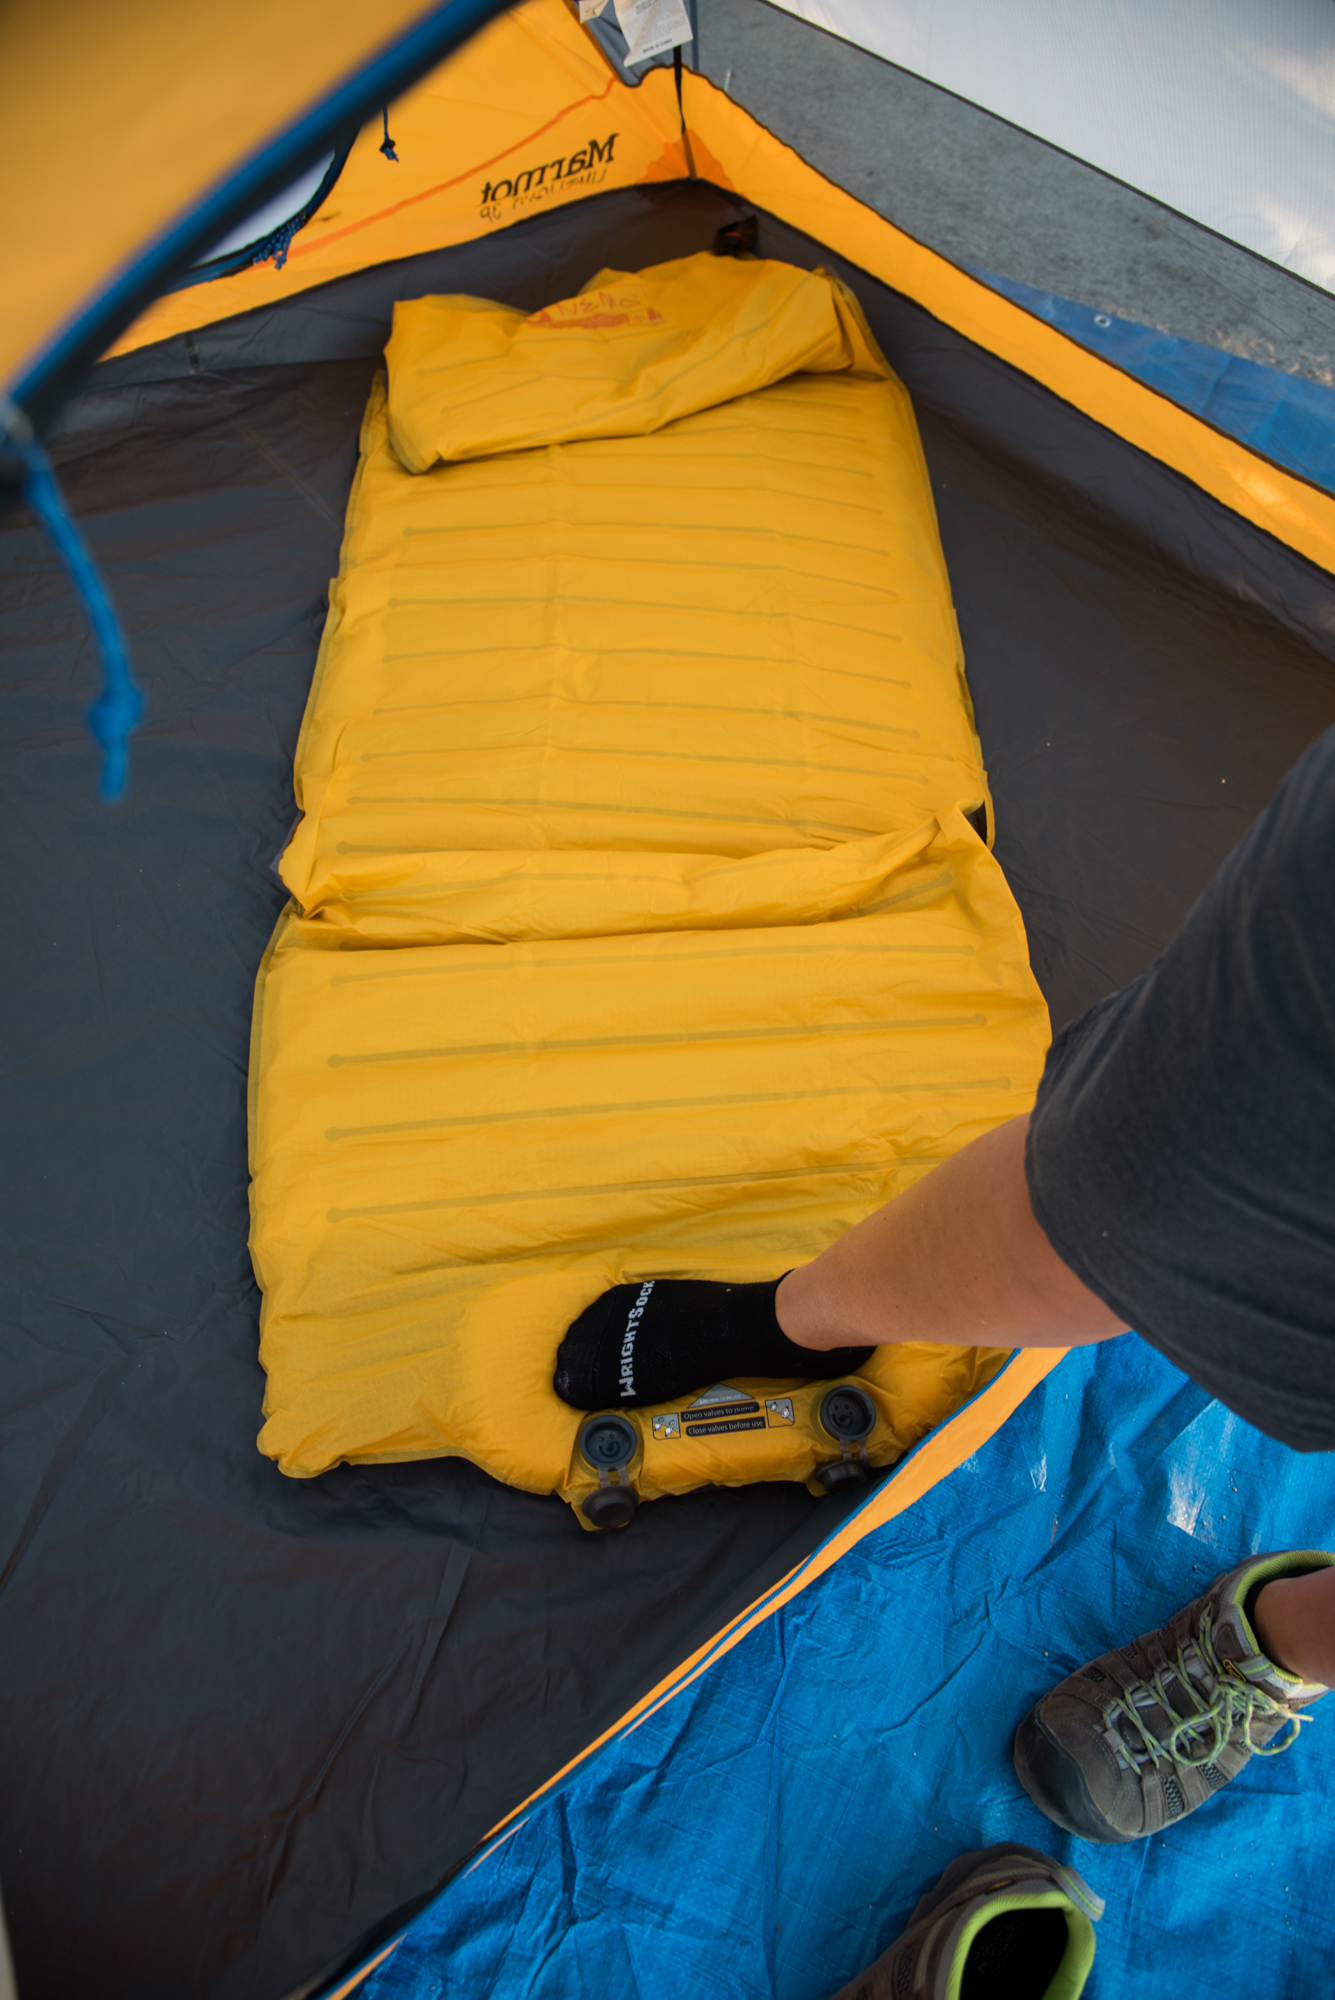 Inflating - take off your boots, eww!